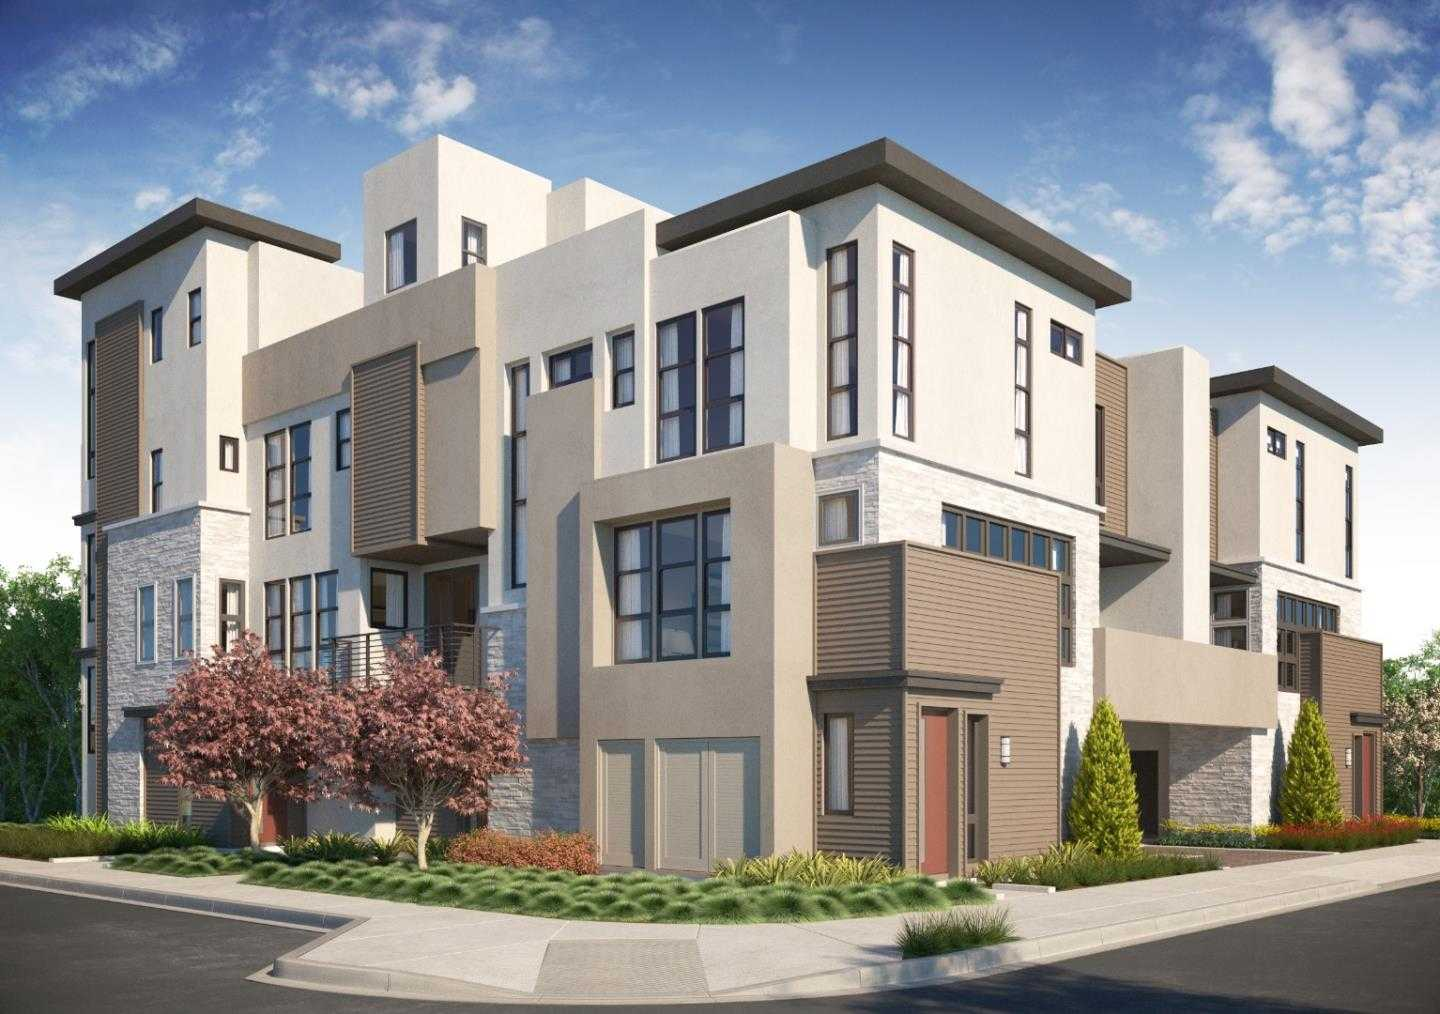 $1,537,000 - 3Br/4Ba -  for Sale in Santa Clara